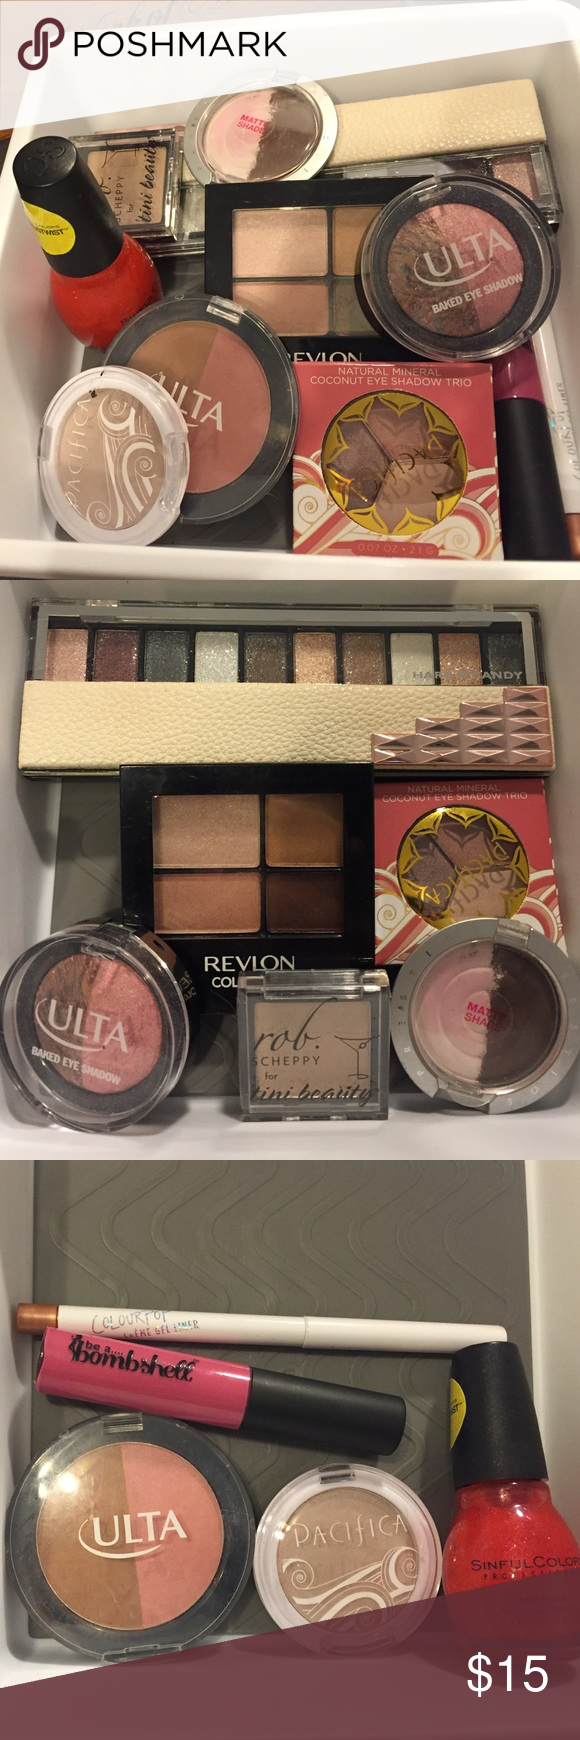 11 piece makeup lot Colour Pop Ulta Be A Bombshell 1 Hard Candy Guilty Pleasures Glitter Palette. 1 Ulta Baked Eyeshdow Duo -Sweet Dreams  1 Pacifica Natural Minerals Eyeshadow Trio -Skinny Dip Crush (NIB). 1 Prestige Matte Shadow Duo -Soulmates. 1 Revelon Quad - 505 Decadent. 1 Colour Pop Cream Gel Liner - Get Paid. 1 Be A Bombshell Lippie - Famous. 1 Ulta Blush/Bronzer Duo Splendor/Bronzer. 1 Pacifica Highlighter/Eyeshadow - Ethereal. 1 Sinful Colors Glitter Polish - Horizon Shine…